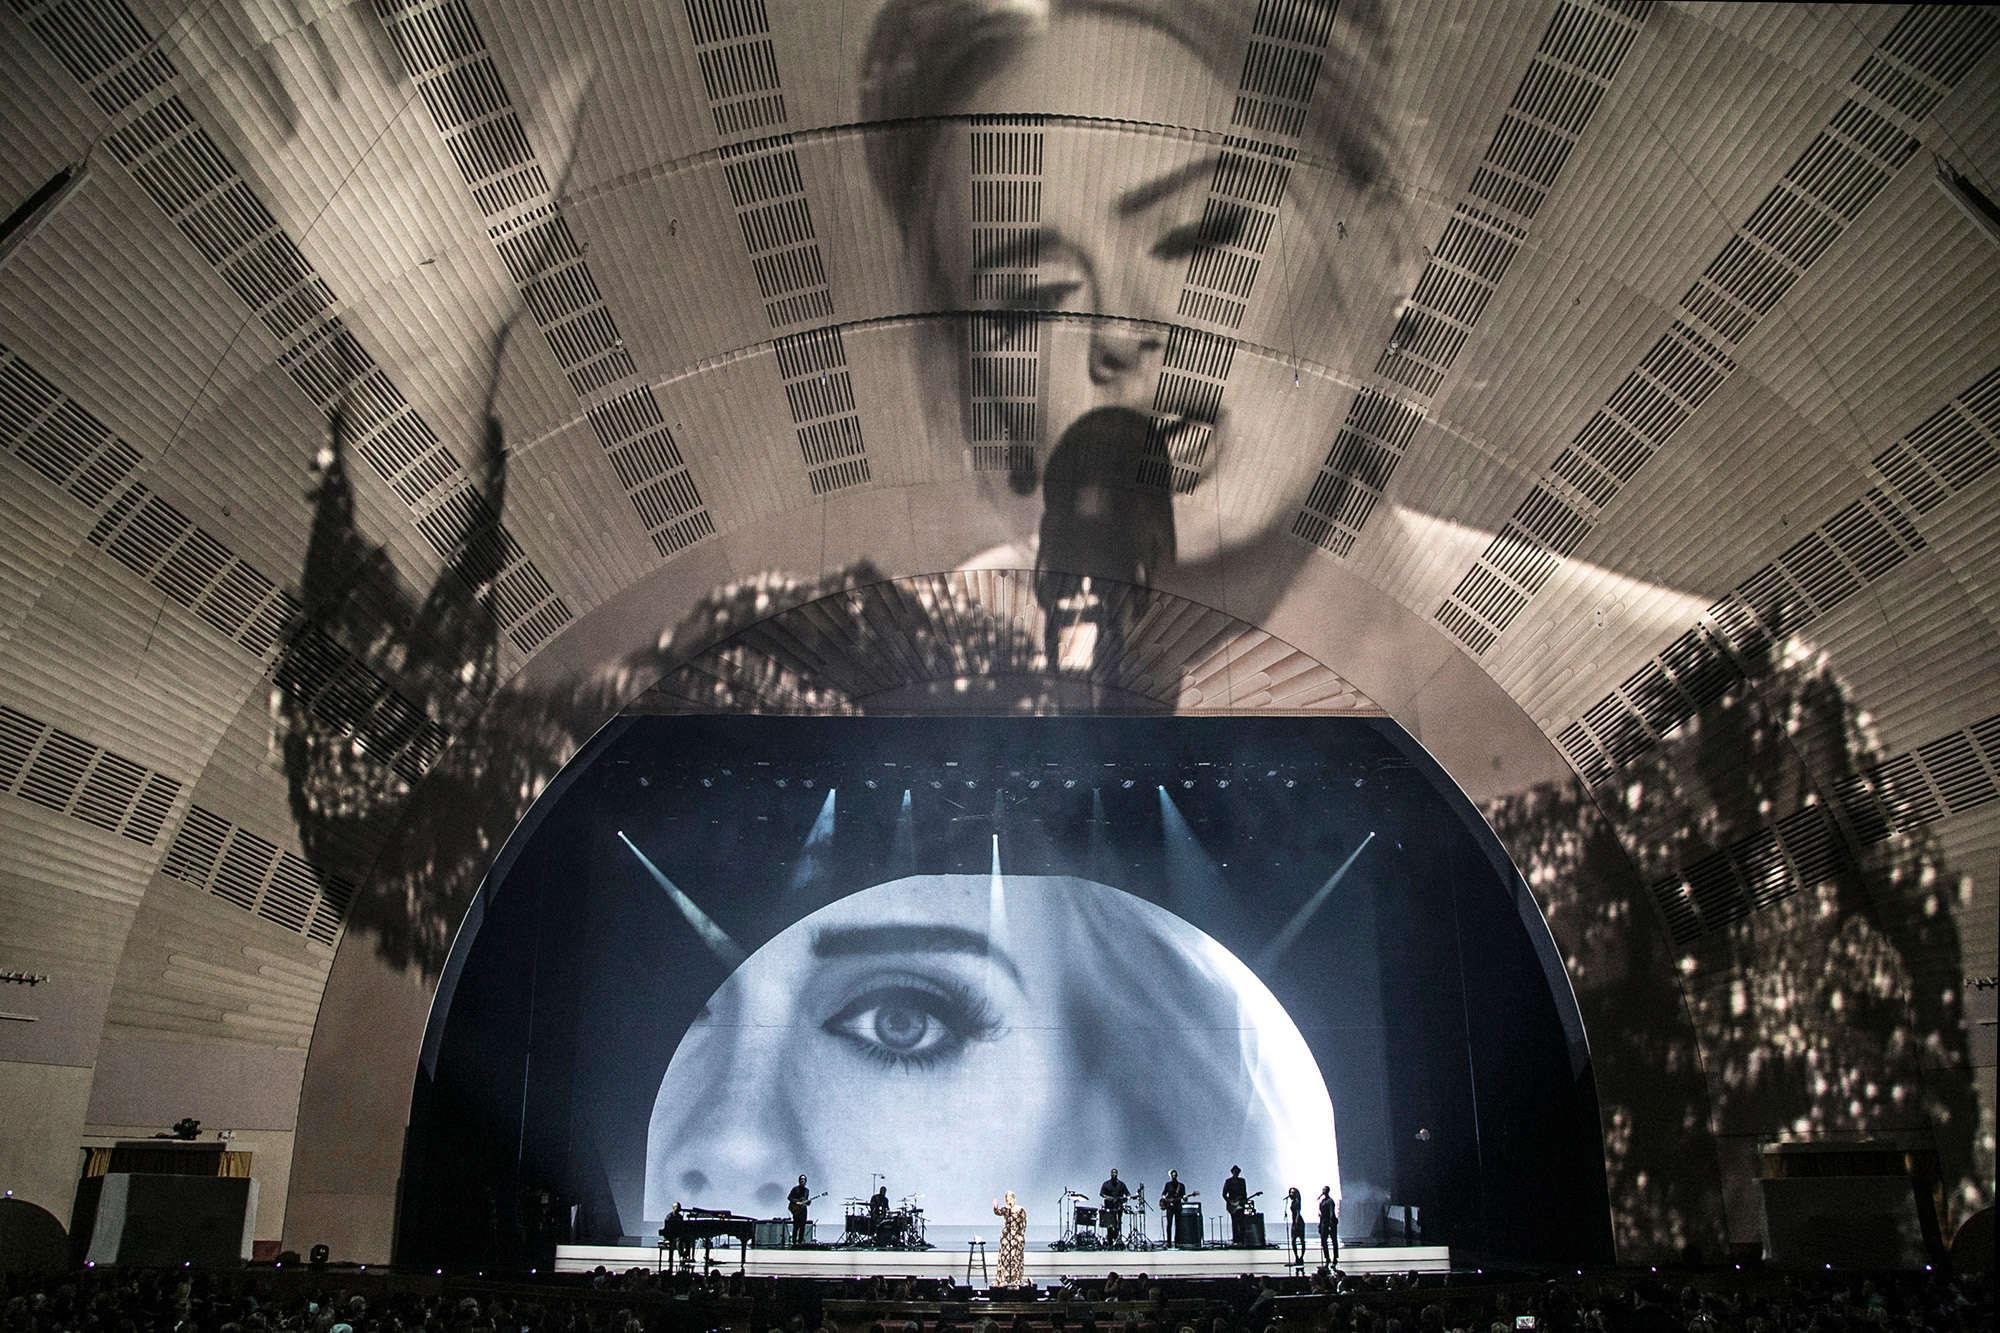 Es Devlin set at Adele concert - Adele screened on backdrop